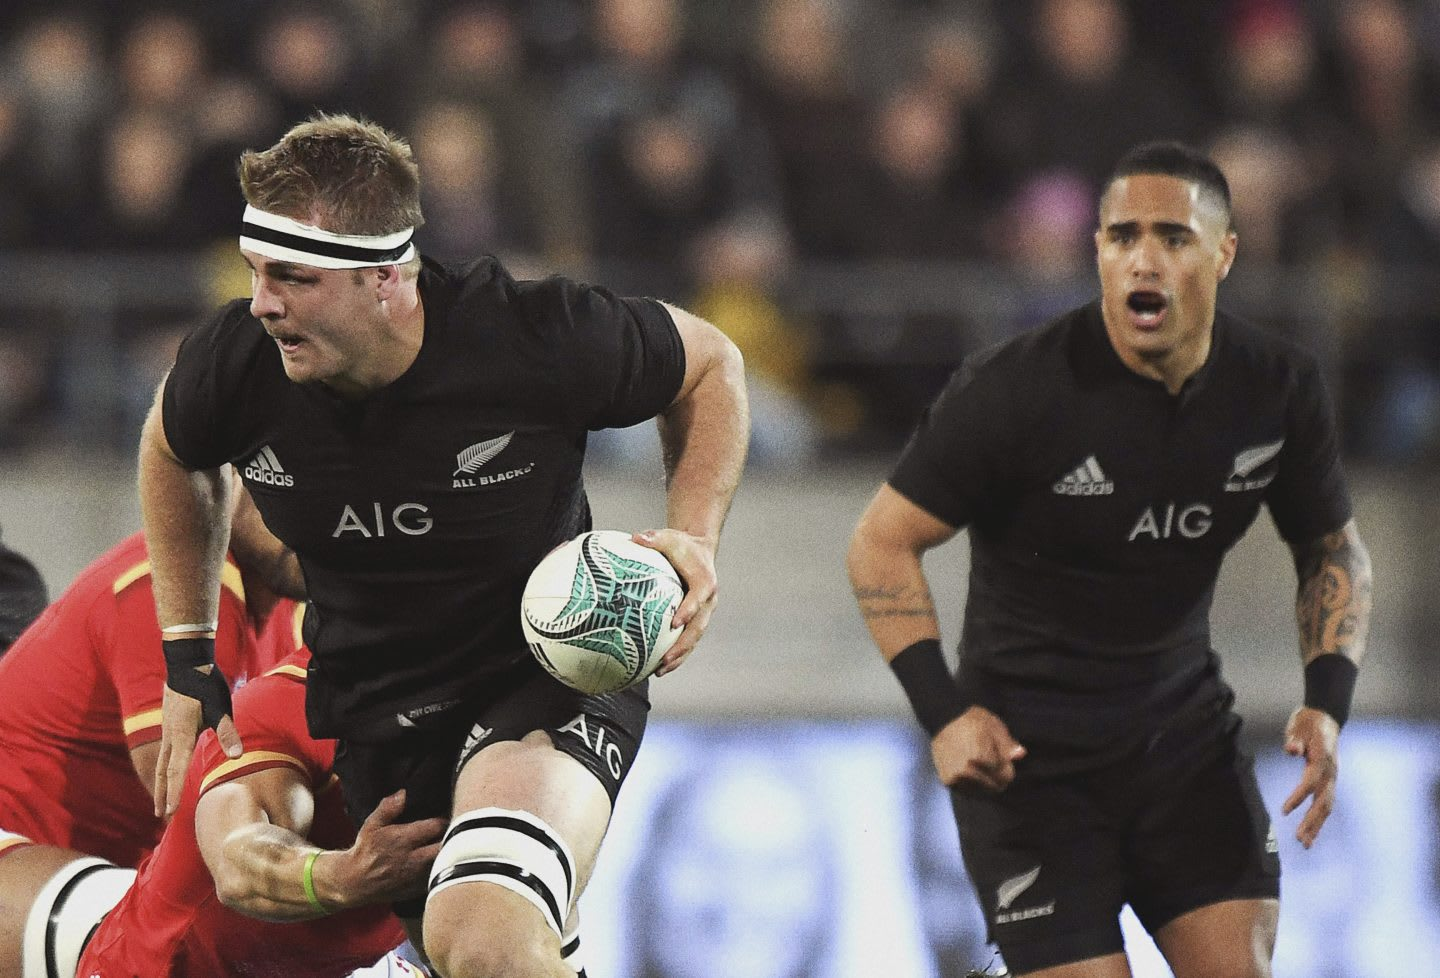 Sam Cane. New Zealand All Blacks v Wales. Rugby Union. 2nd test of the 3 test match Steinlager series. Westpac Stadium, Wellington. 18 June 2016. Ready for Sport, adidas athlete, GamePlanA